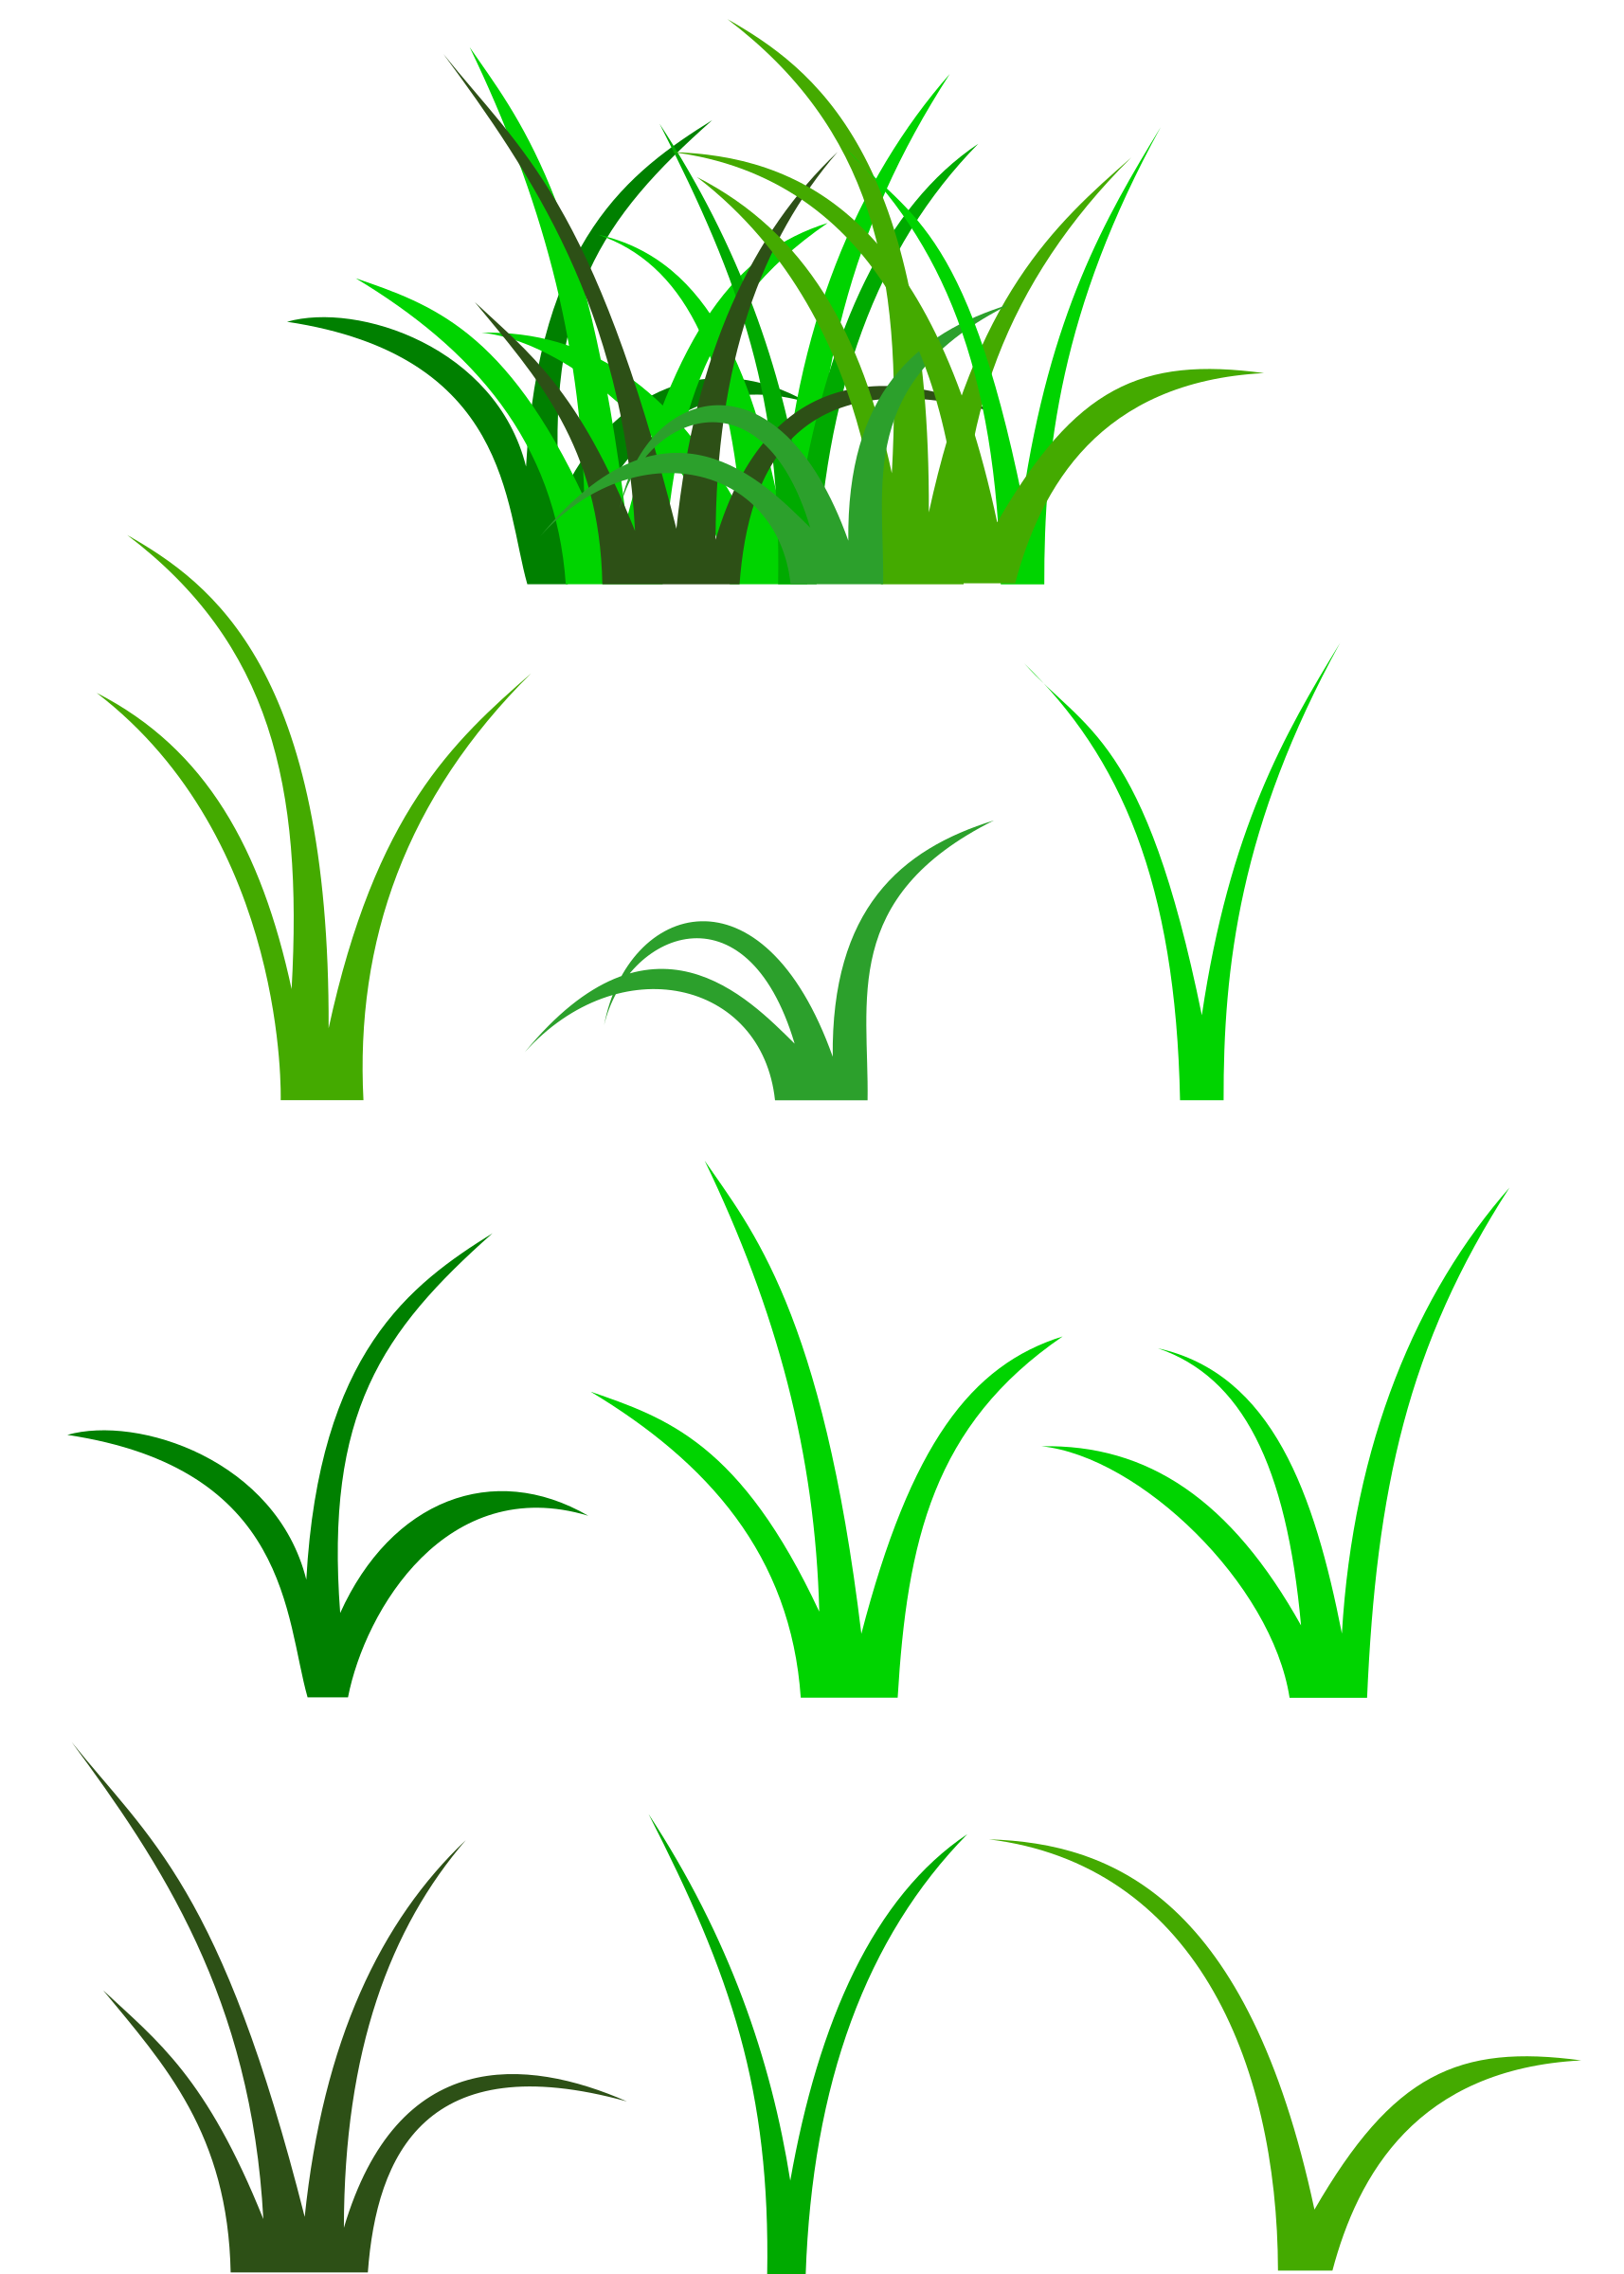 clipart freeuse download Lawn clipart tall grass. Silhouette clip art at.